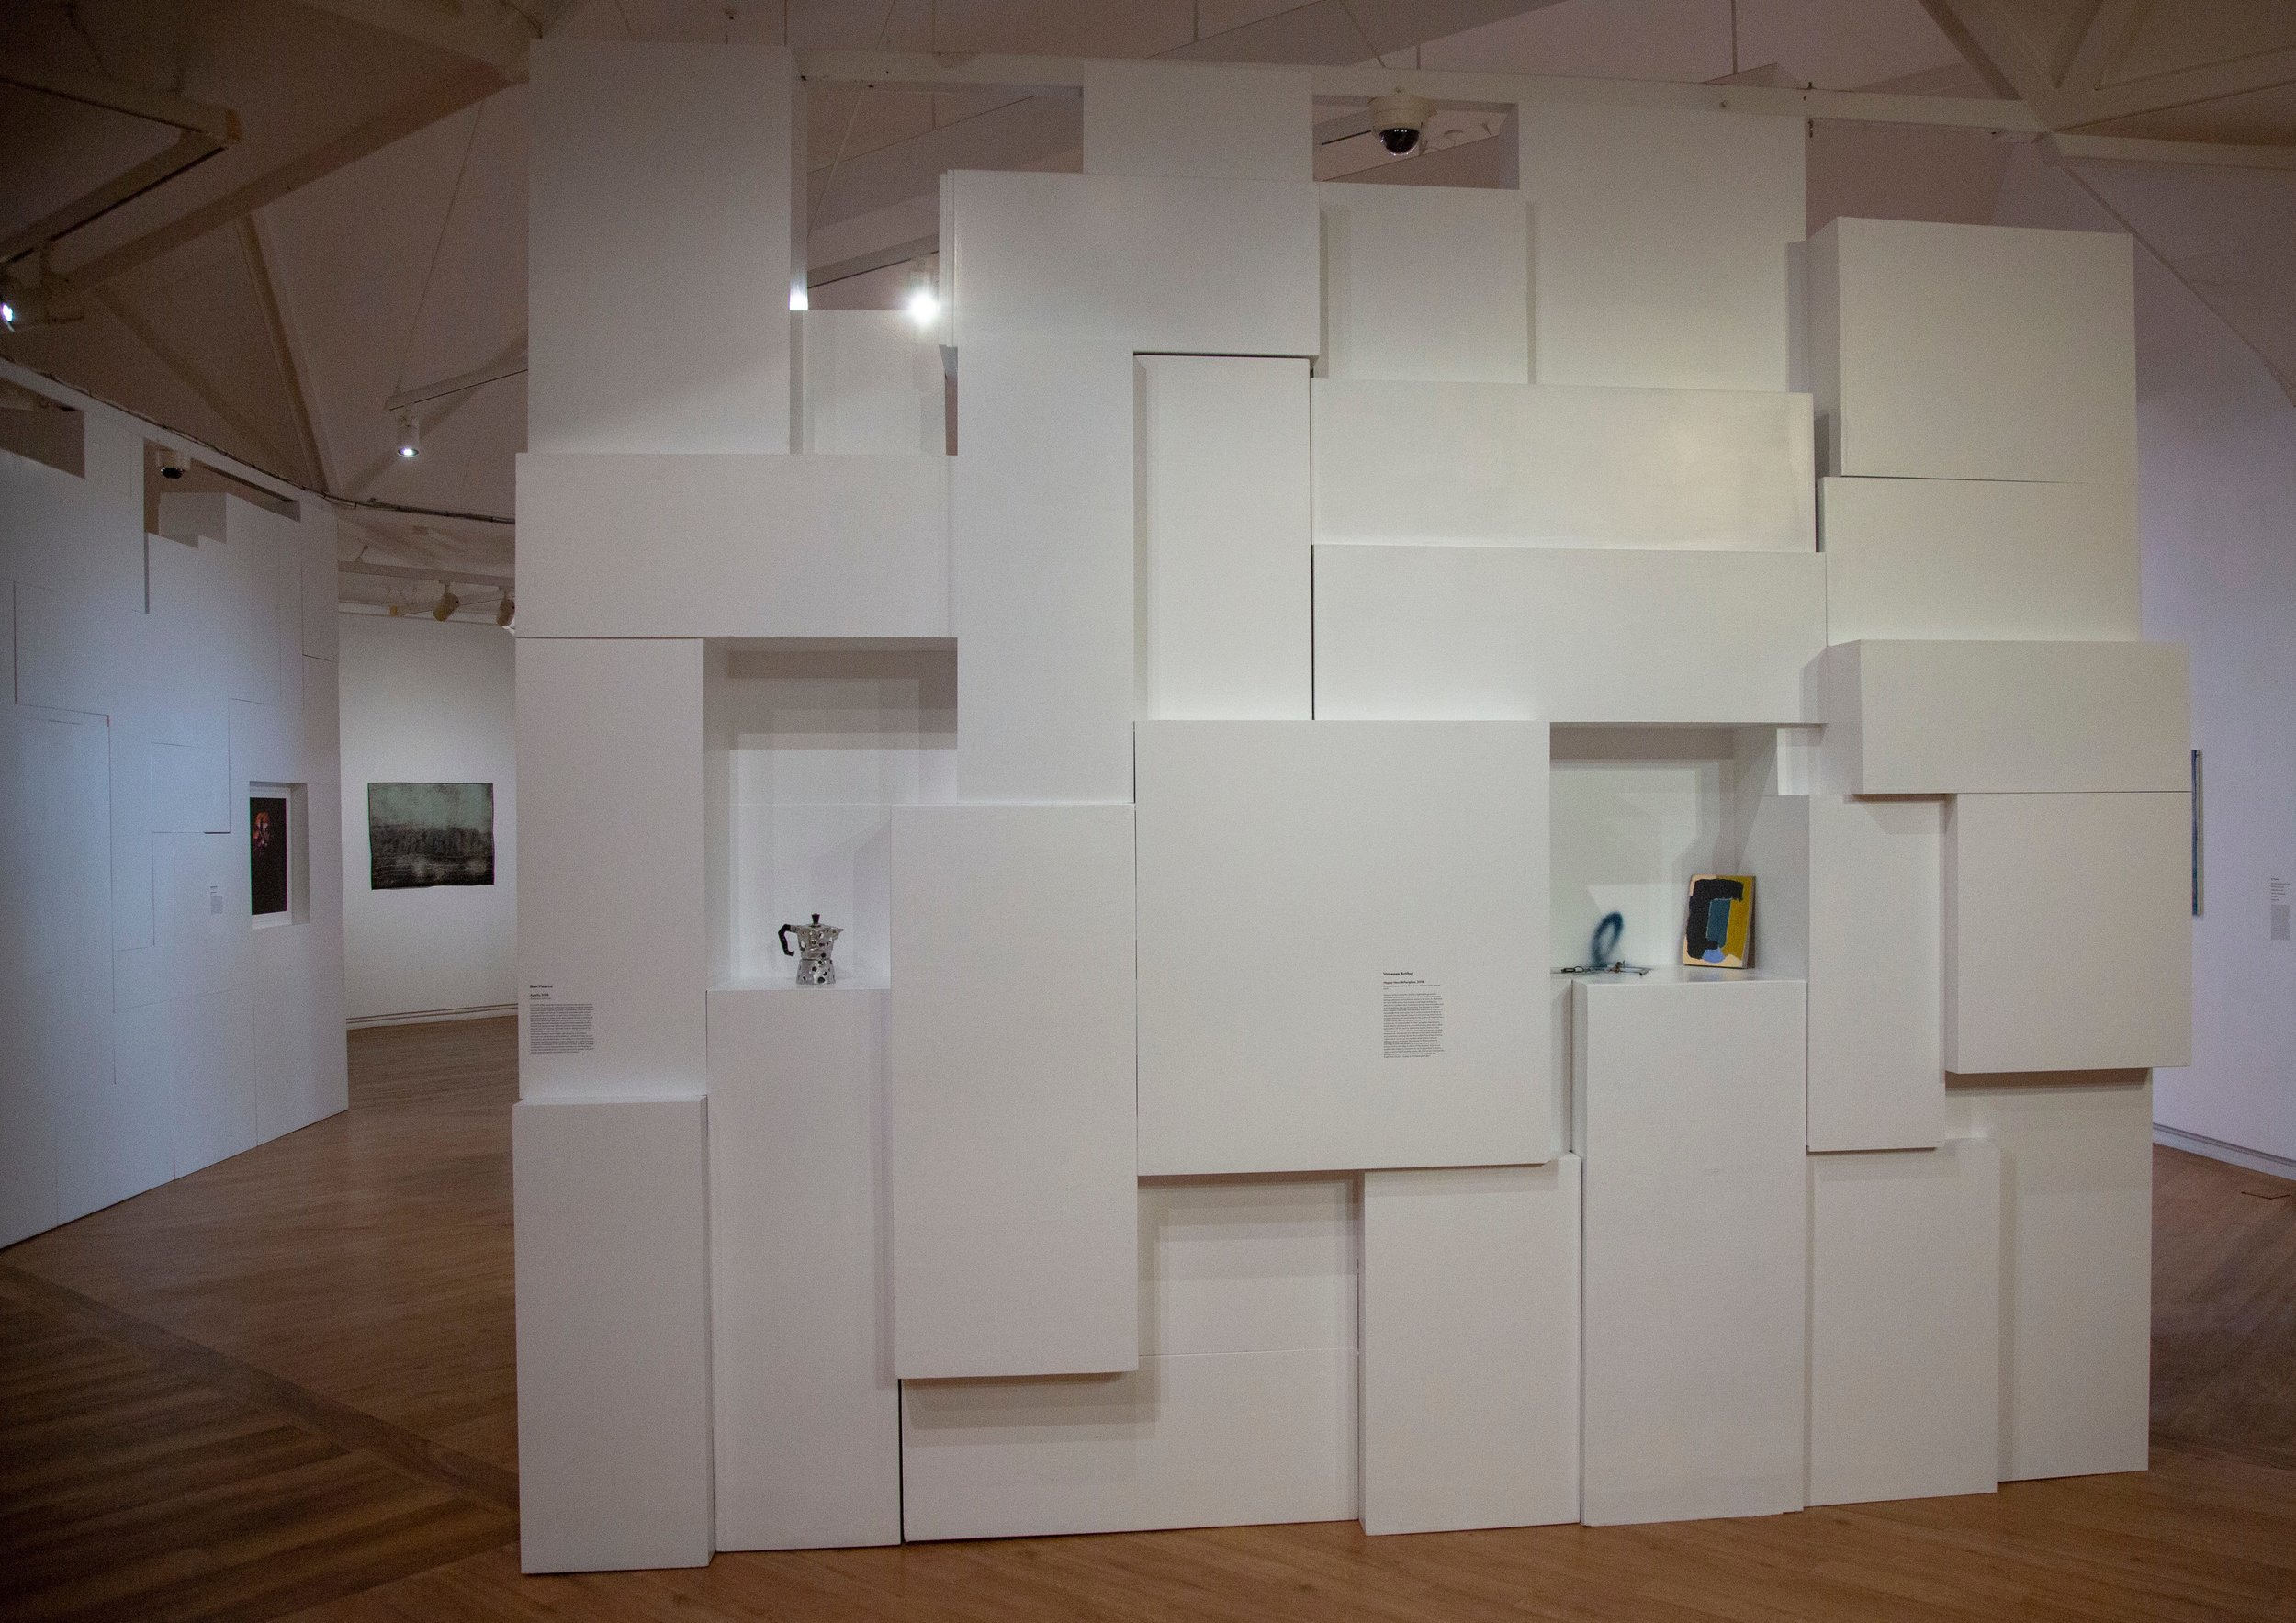 EAST 2018 install view.